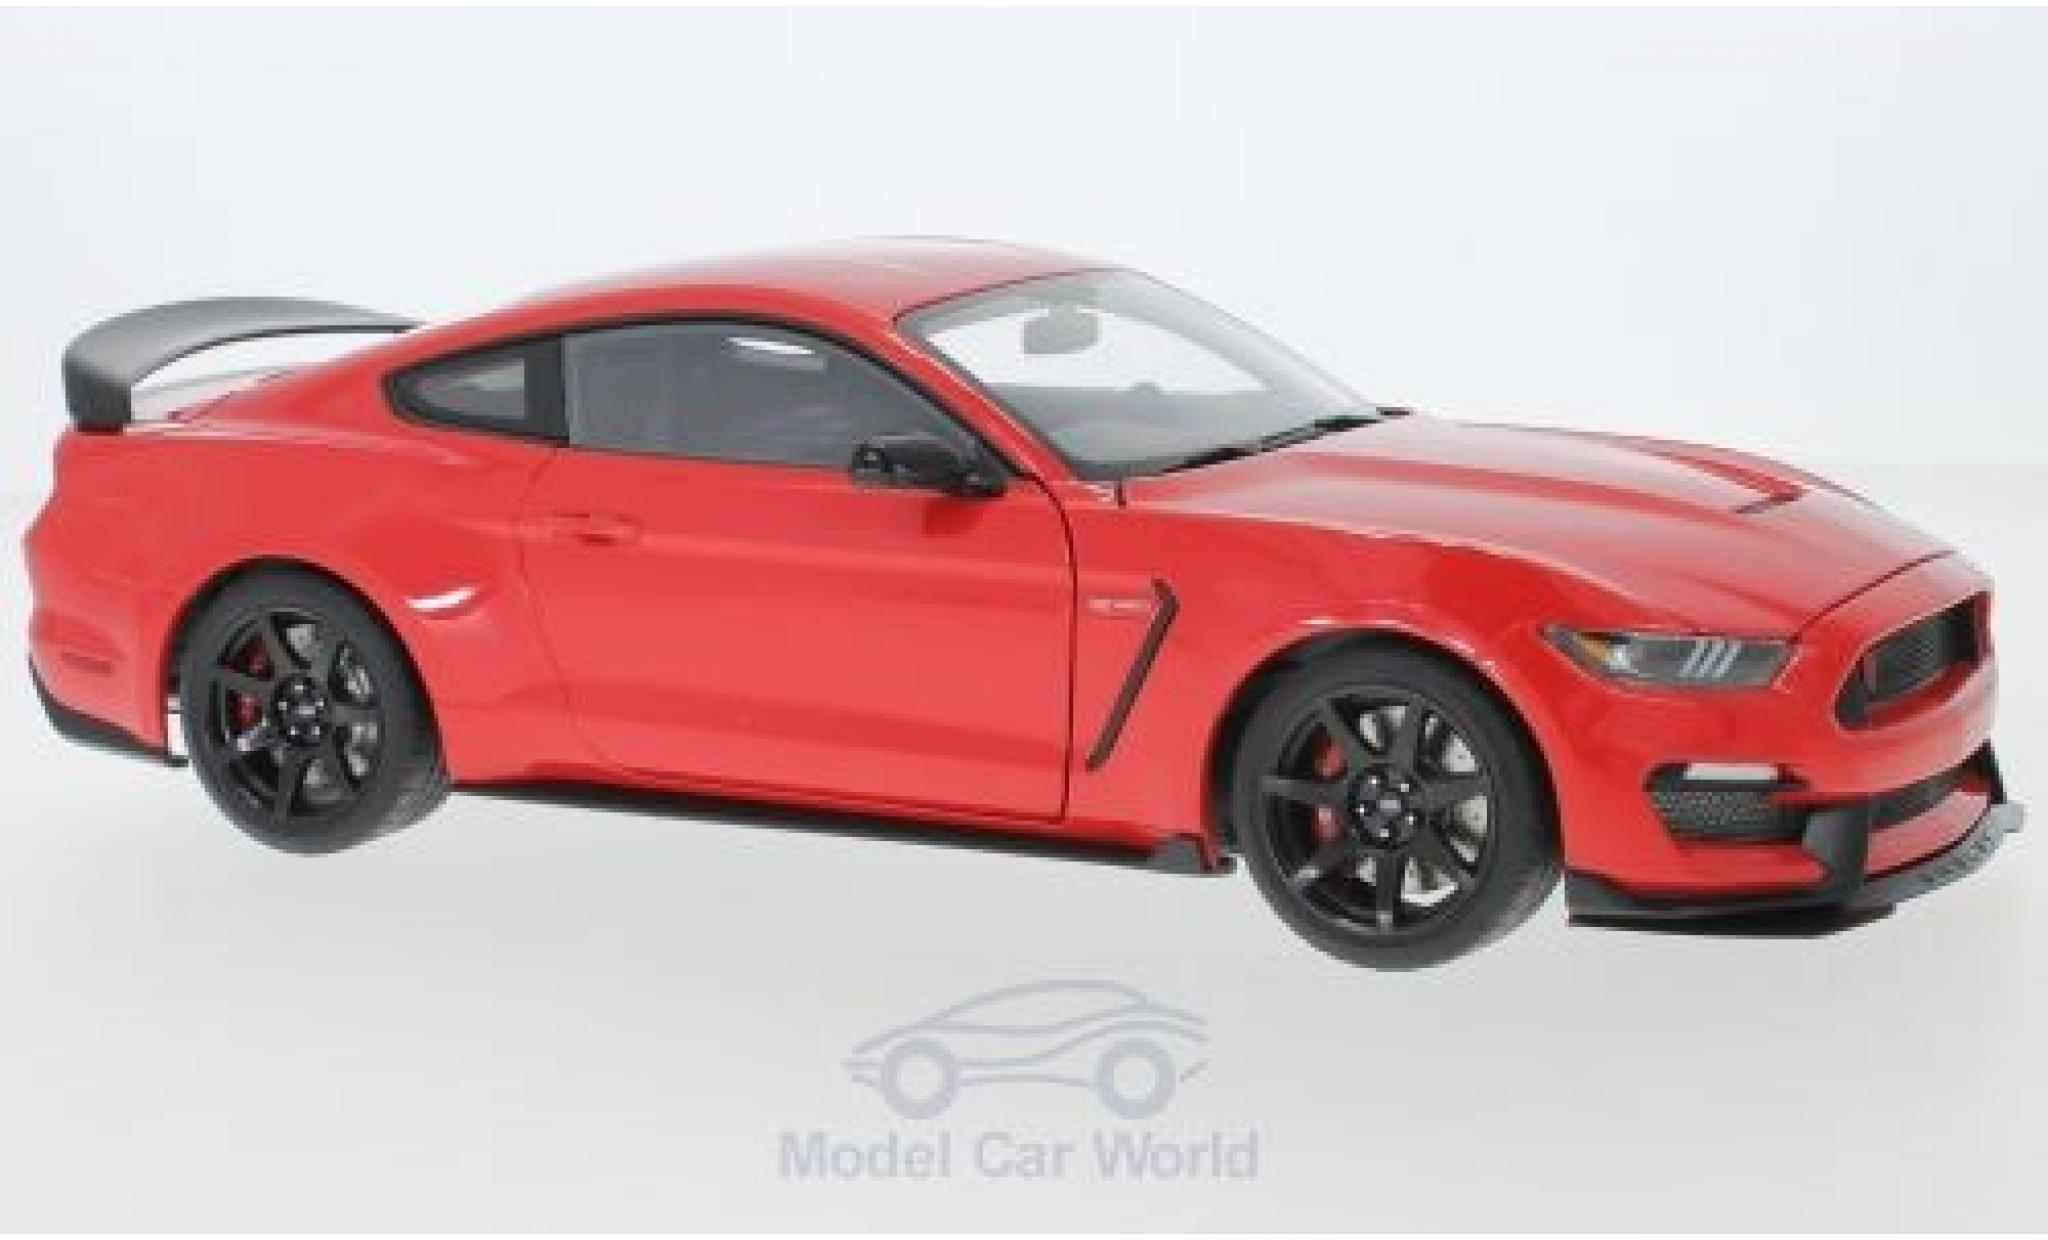 Ford Mustang 1/18 AUTOart Shelby GT-350R red 2017